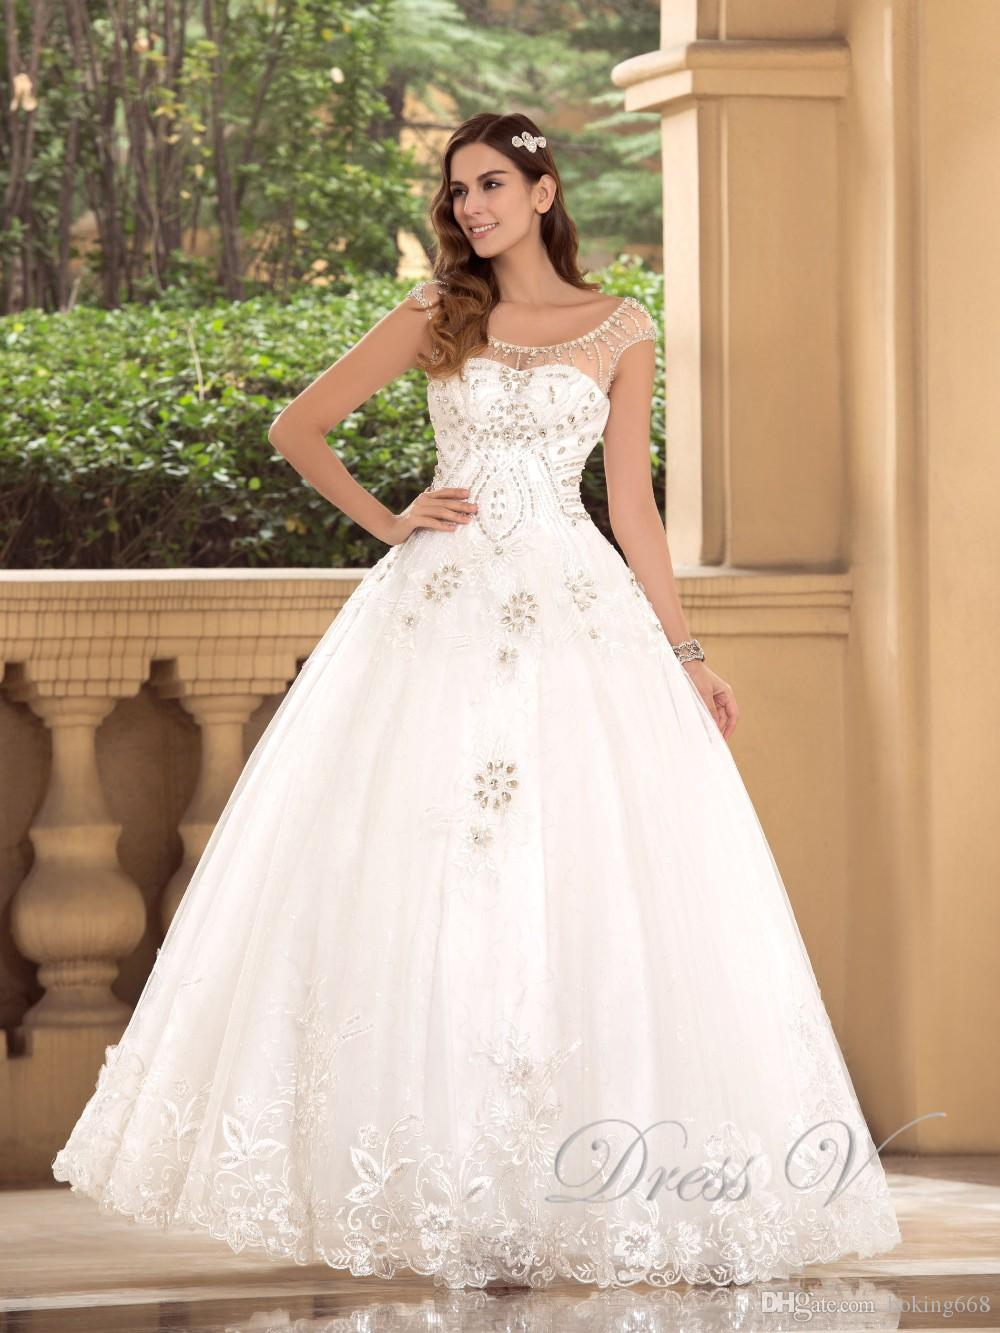 e02f426790 Luxury Ball Gown Wedding Dresses 2019 Newest Scoop Heavy Beaded Top Lace  Wedding Dresses Princess Casamento Bridal Gowns Custom Made Cheap Dresses  Cheap ...